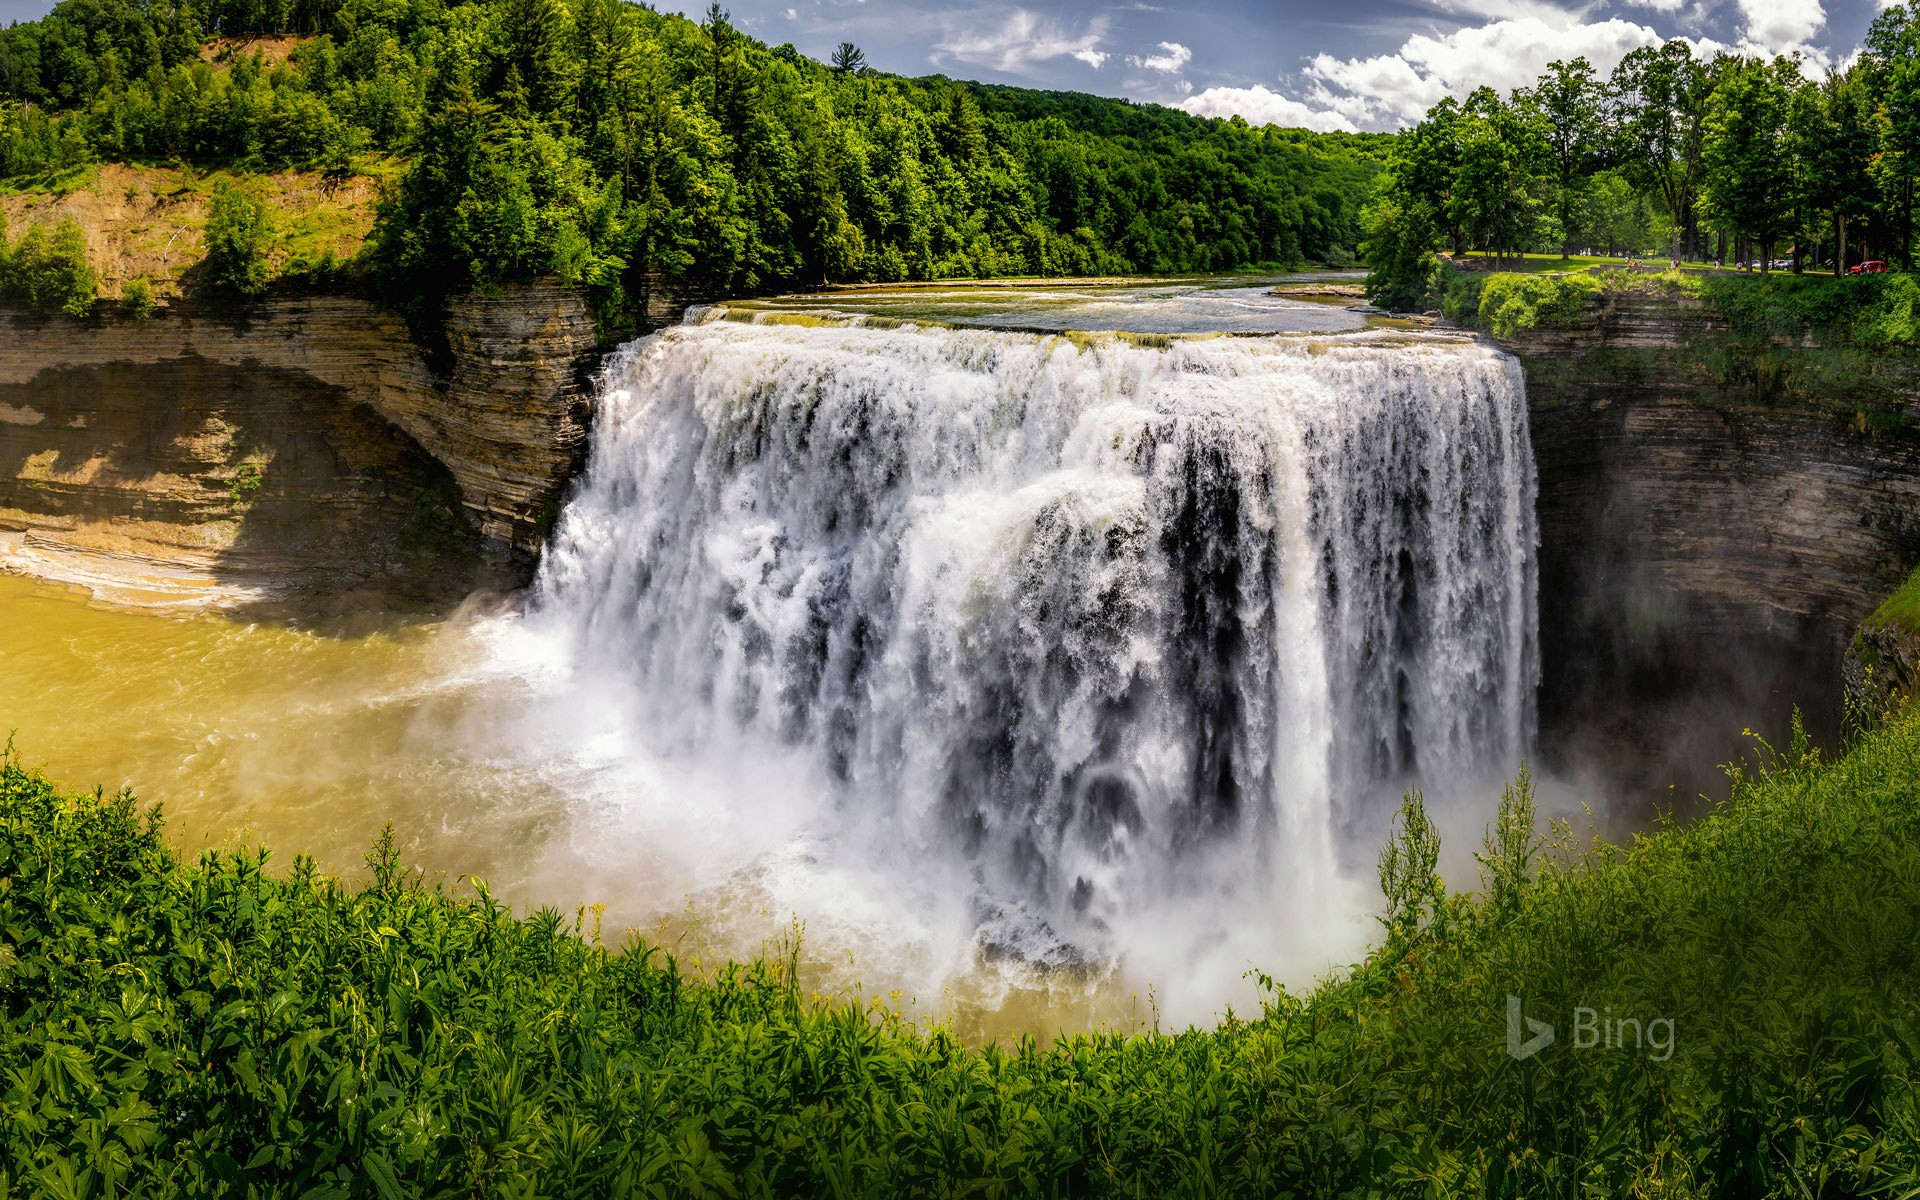 Middle Falls at Letchworth State Park, New York